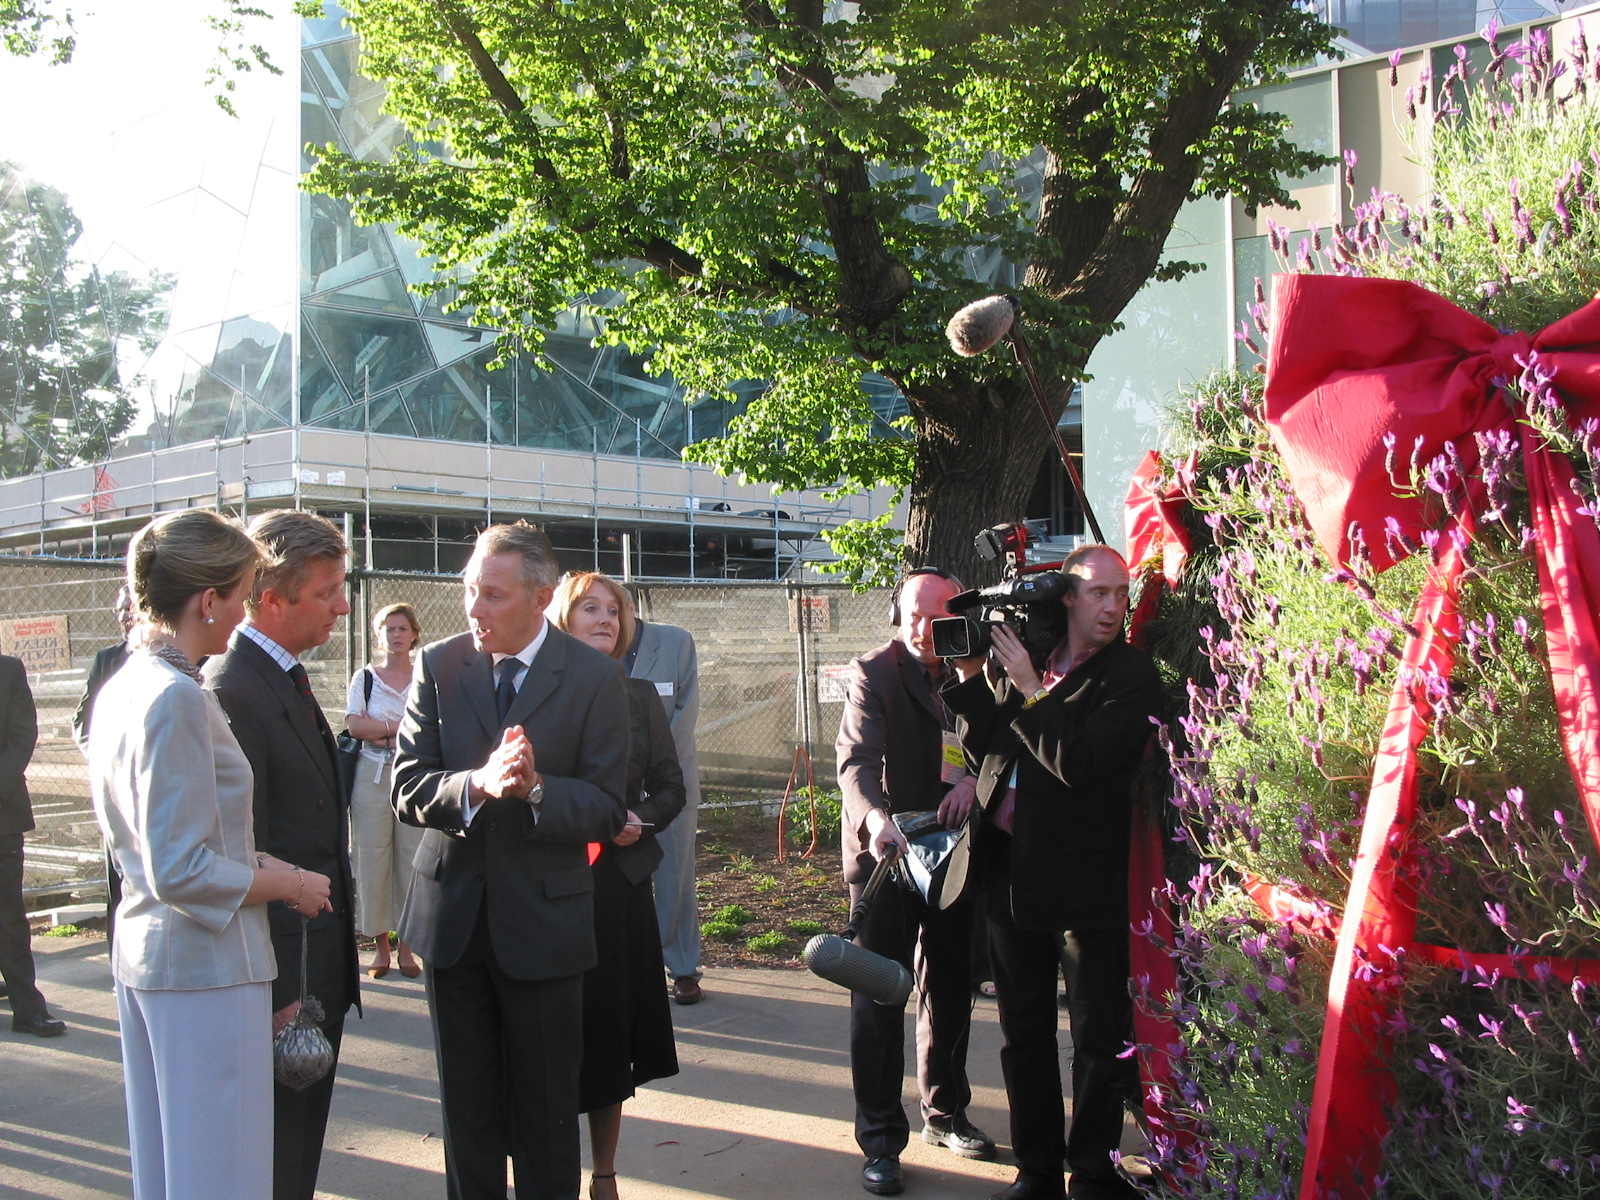 Prince Phillippe of Belgium launches Garsy towers at Federation Square